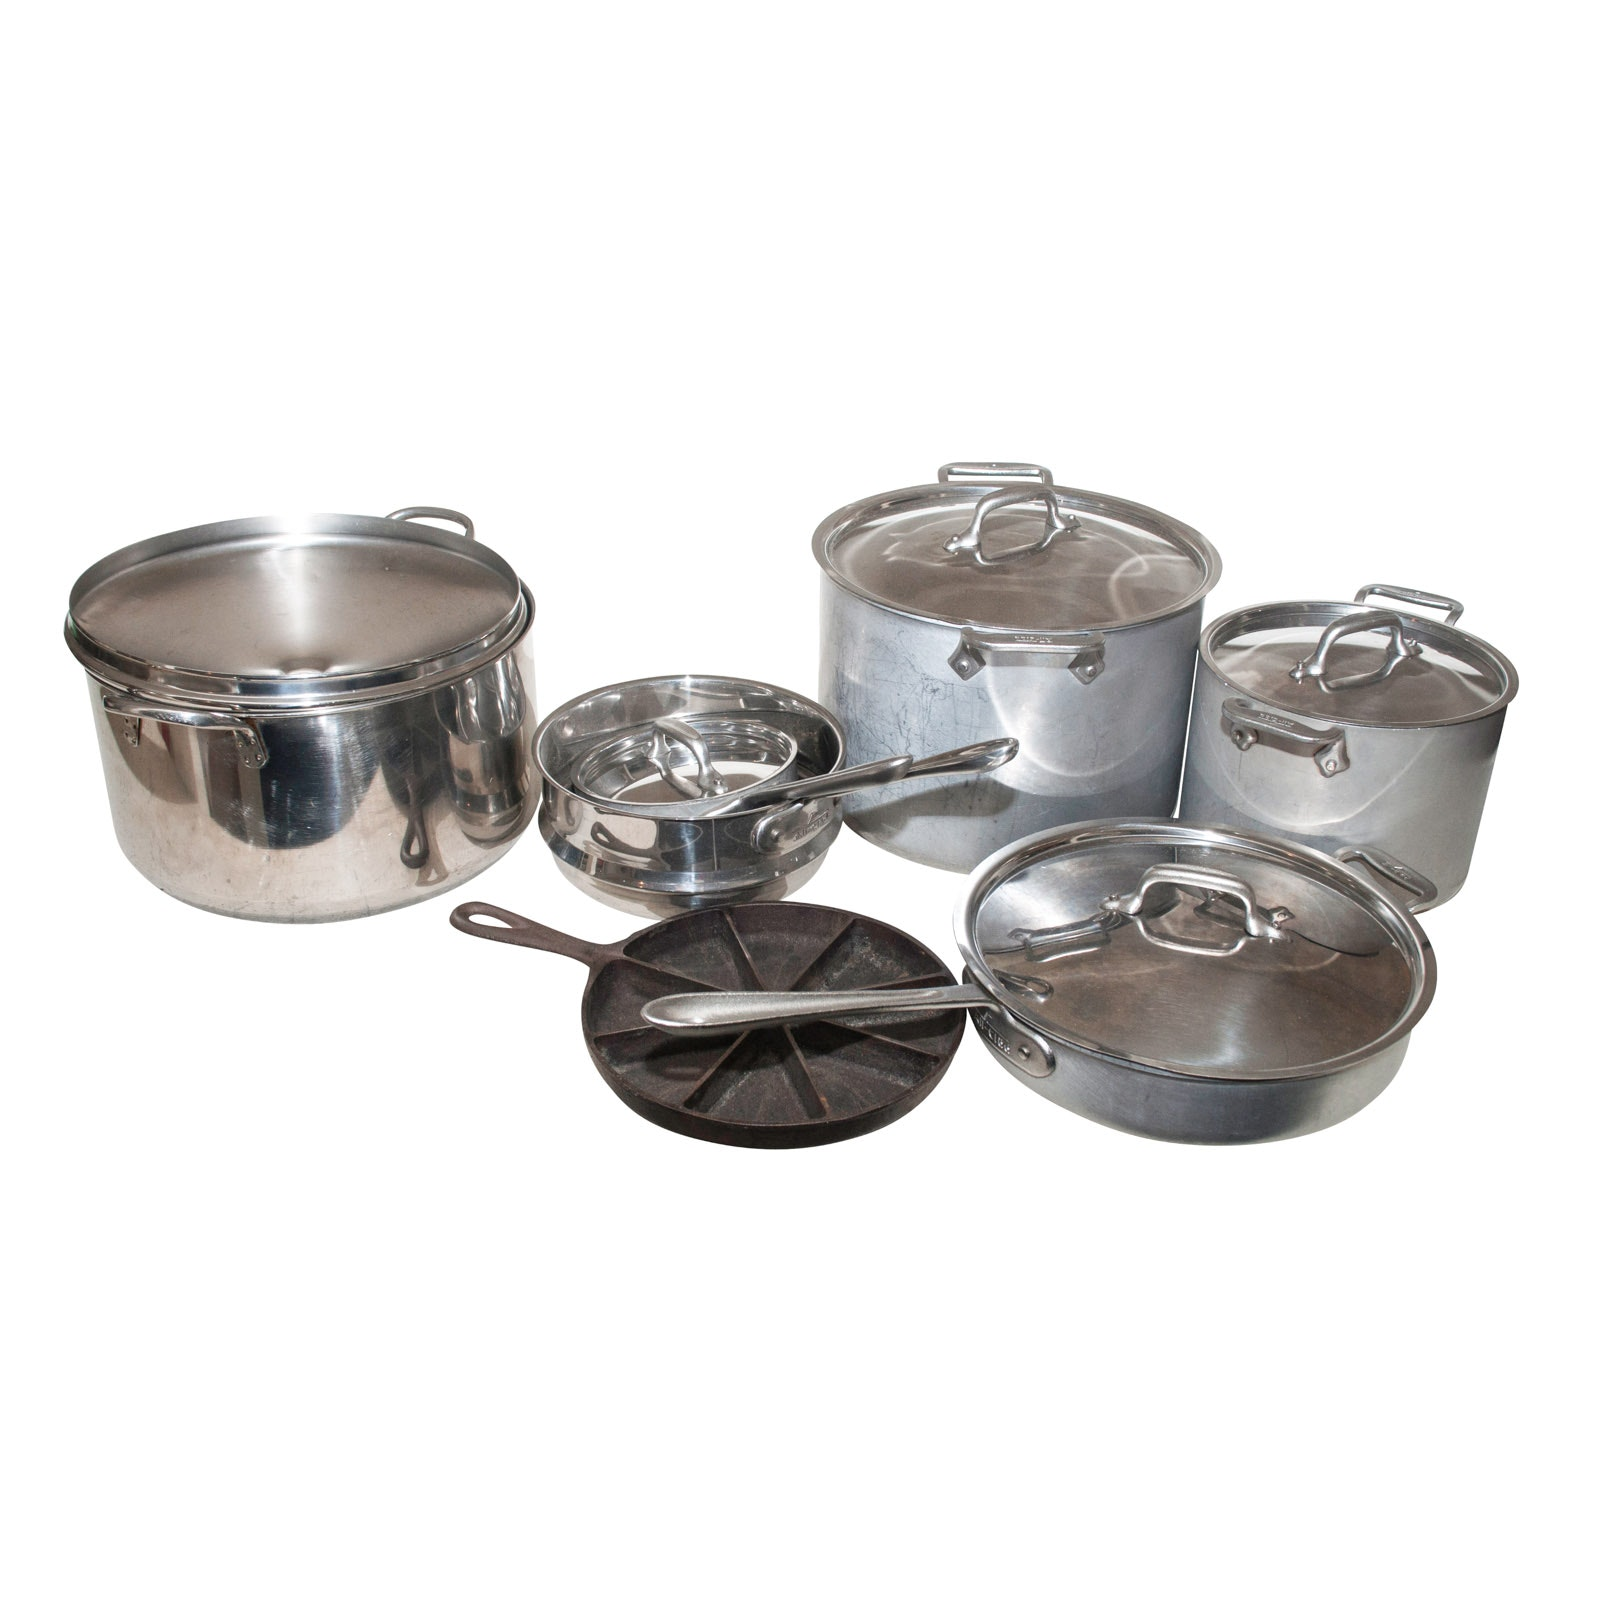 Assorted Pots and Pans Including All-Clad